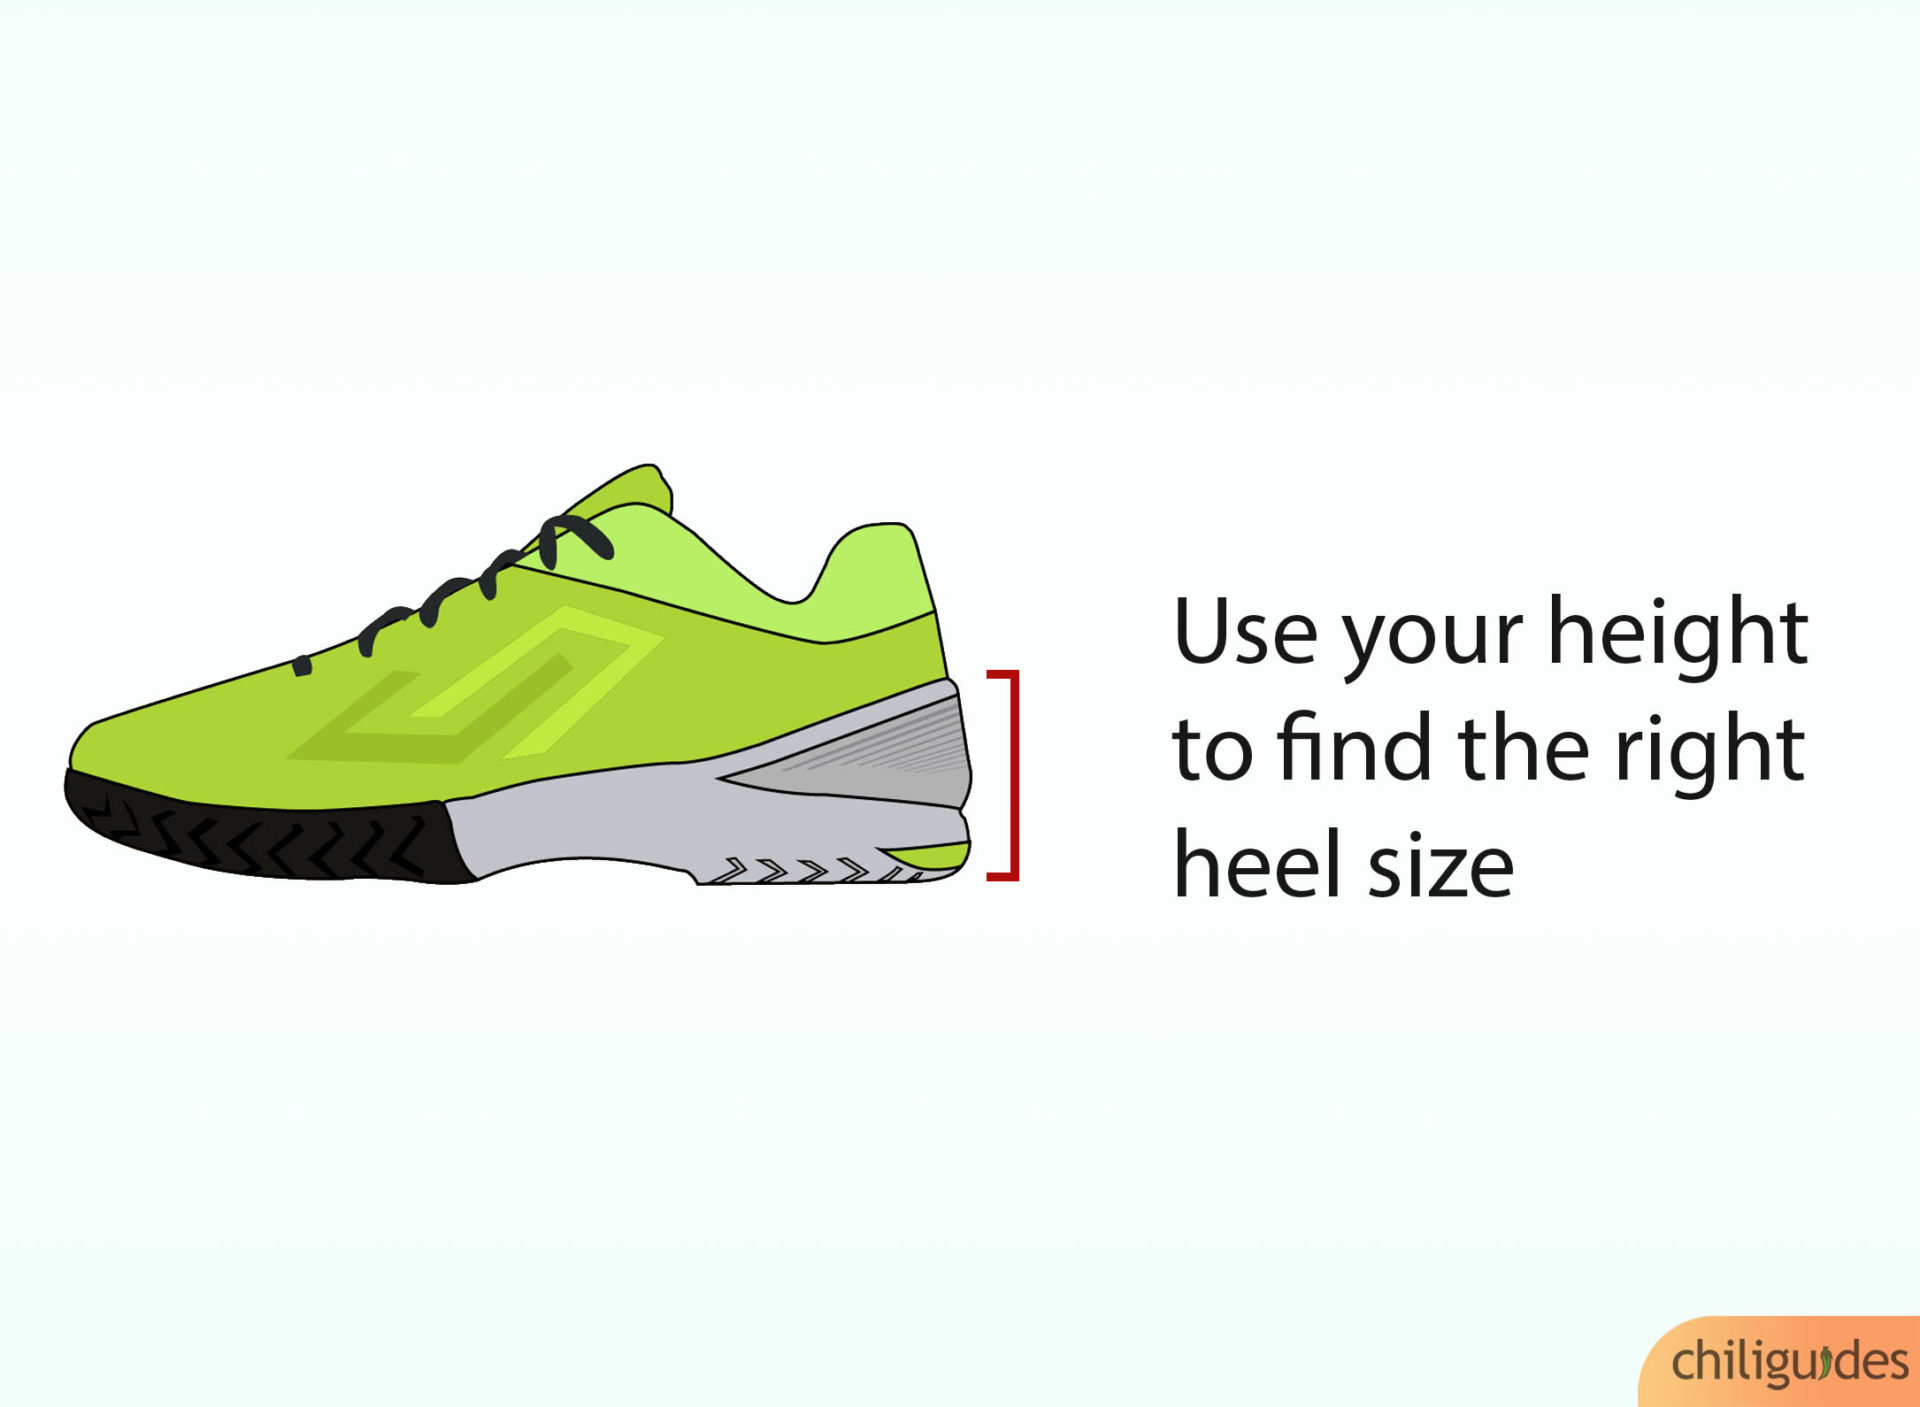 Use your height and flexibility levels to find the right-sized heel.